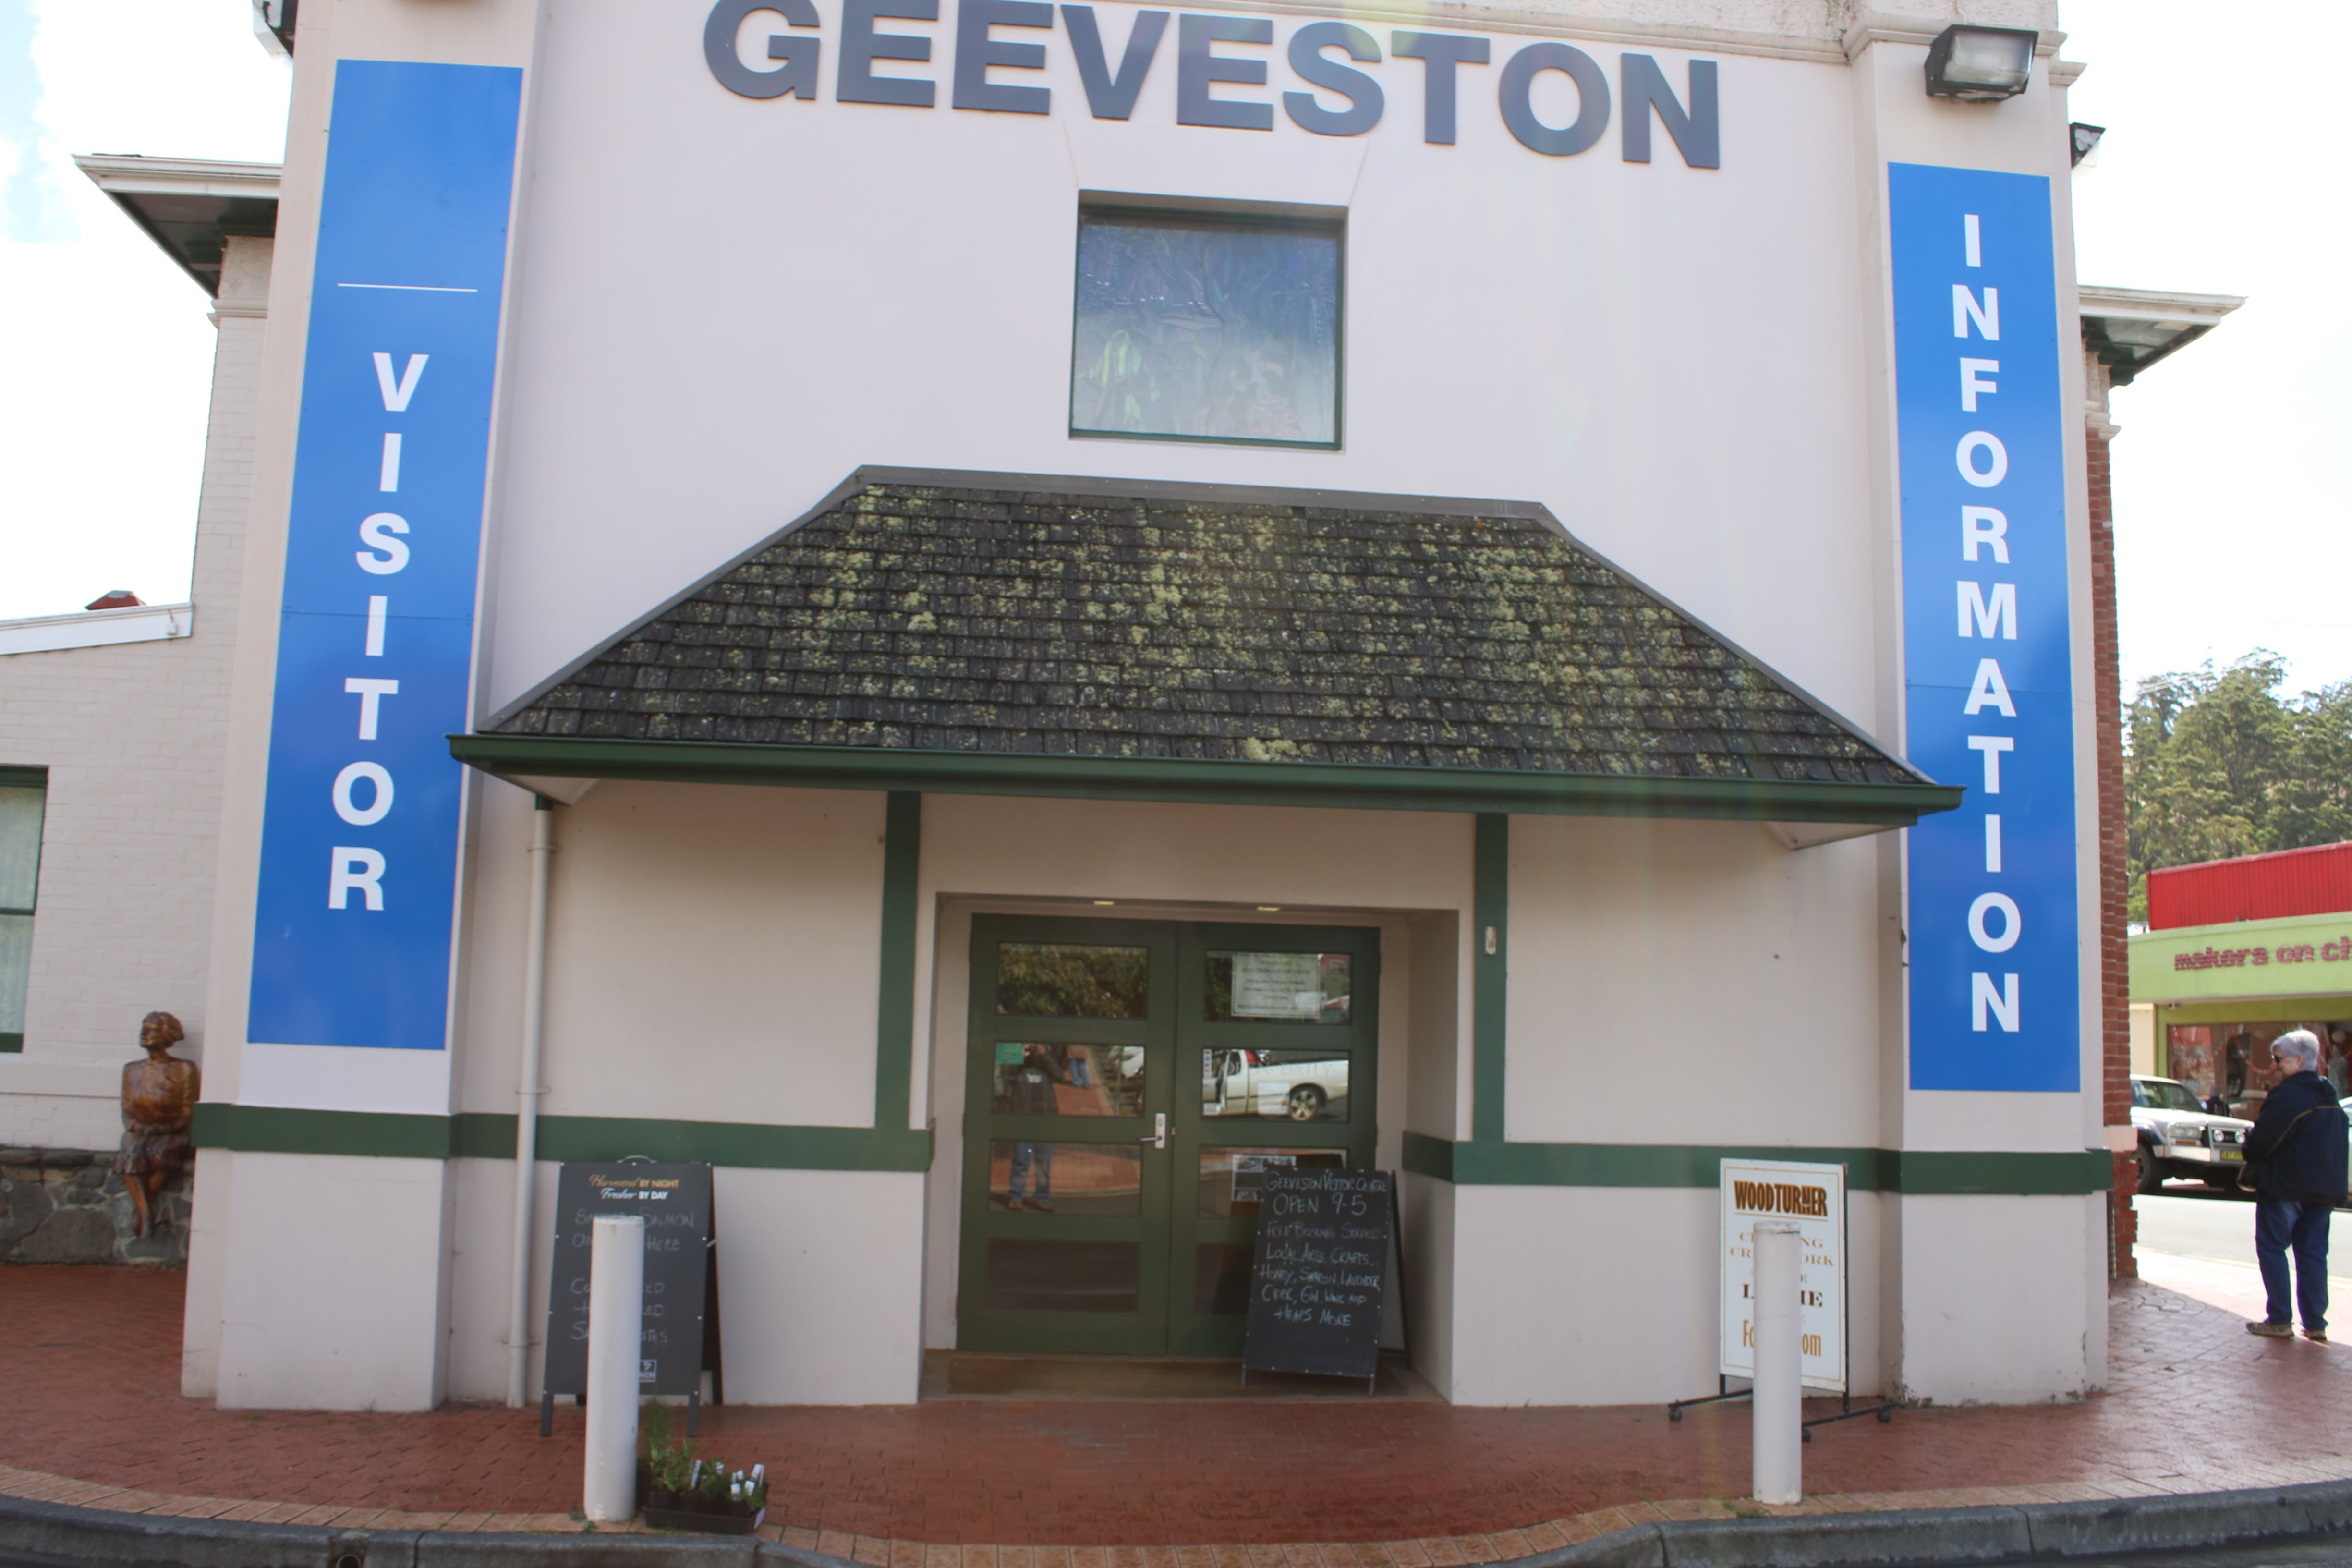 Our Visitor Centre. Step Inside!